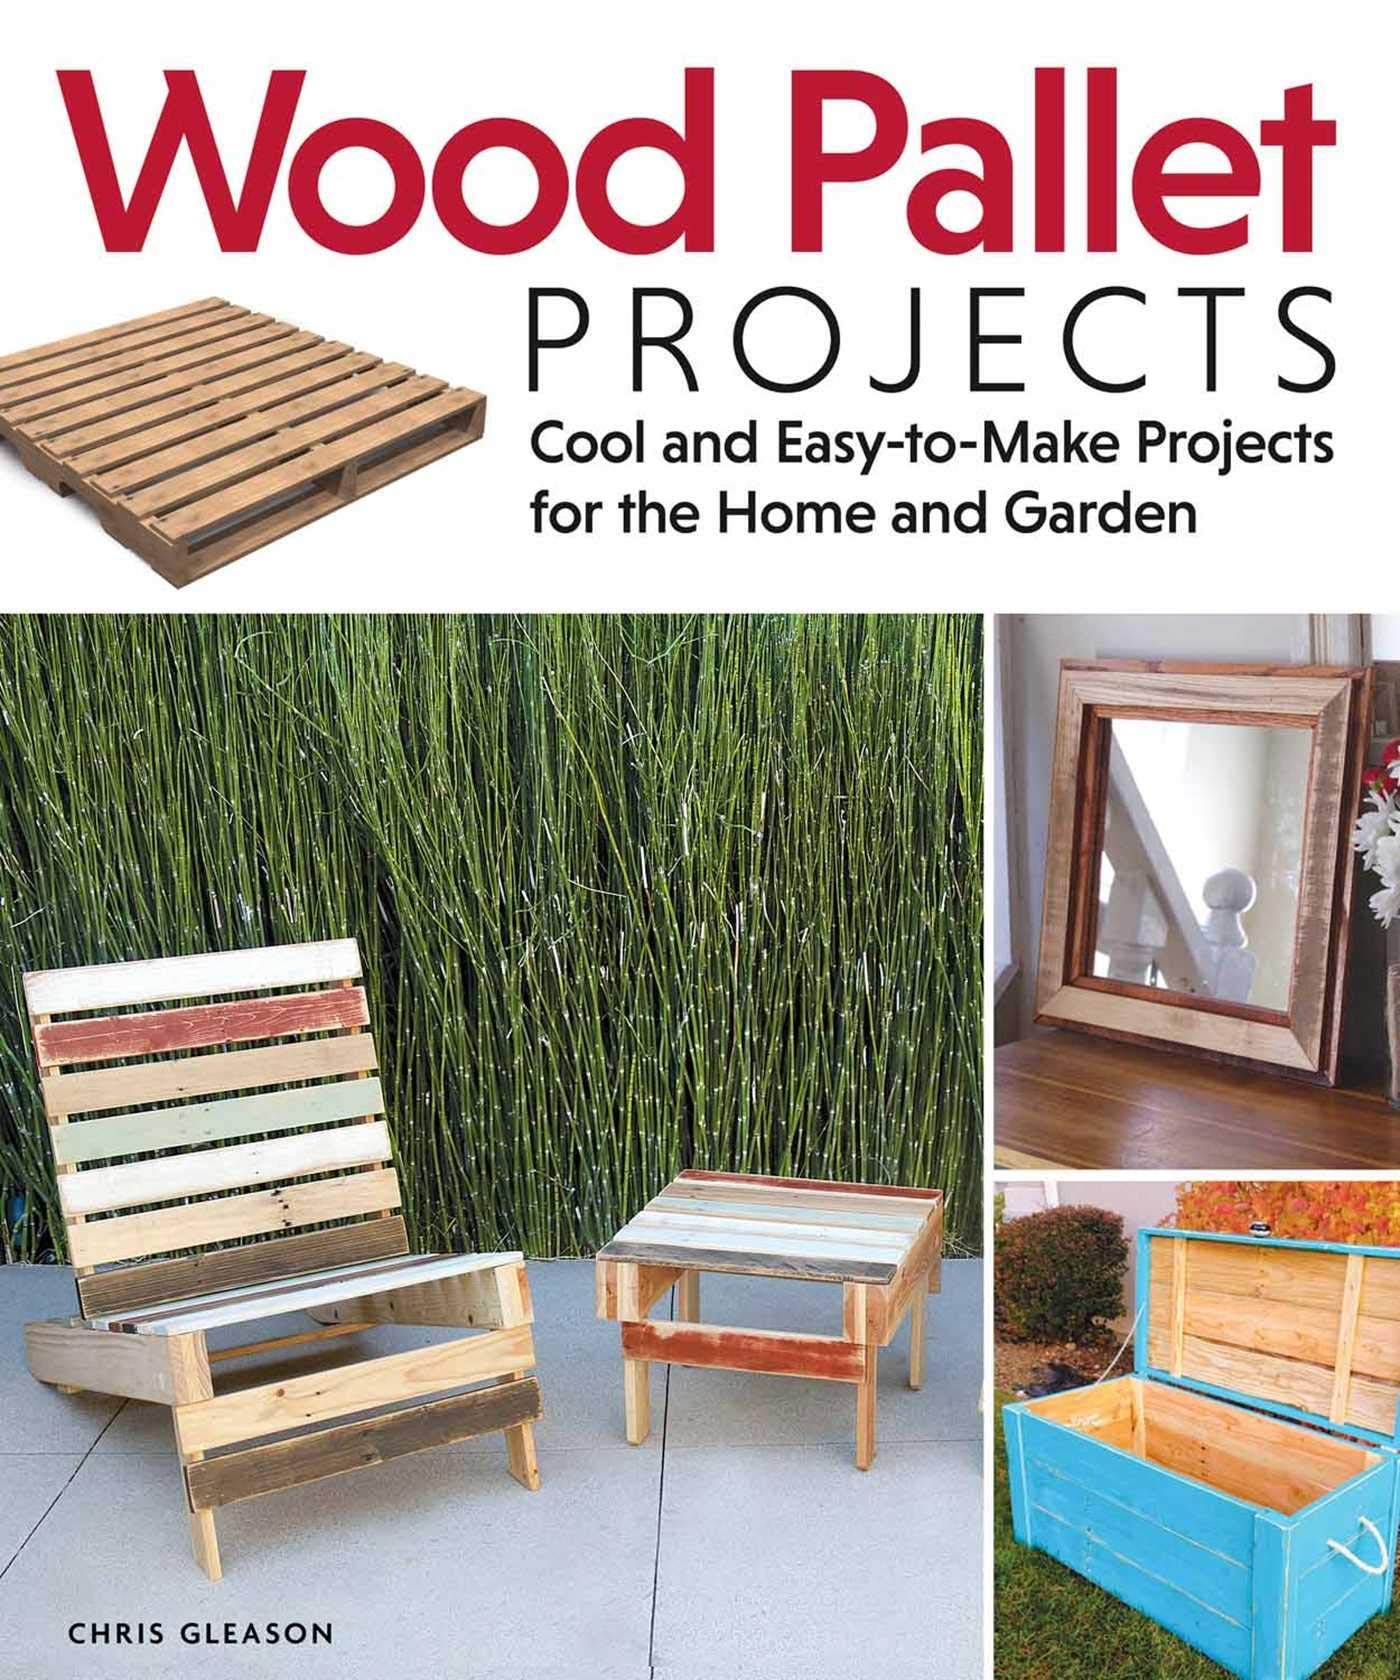 Wood Pallet Projects Cool And Easy To Make Projects For The Home And Garden Fox Chapel Publishing Learn How To Upcycle Pallets To Make One Of A Kind Furniture Accessories From Boxes To A Ukulele Gleason